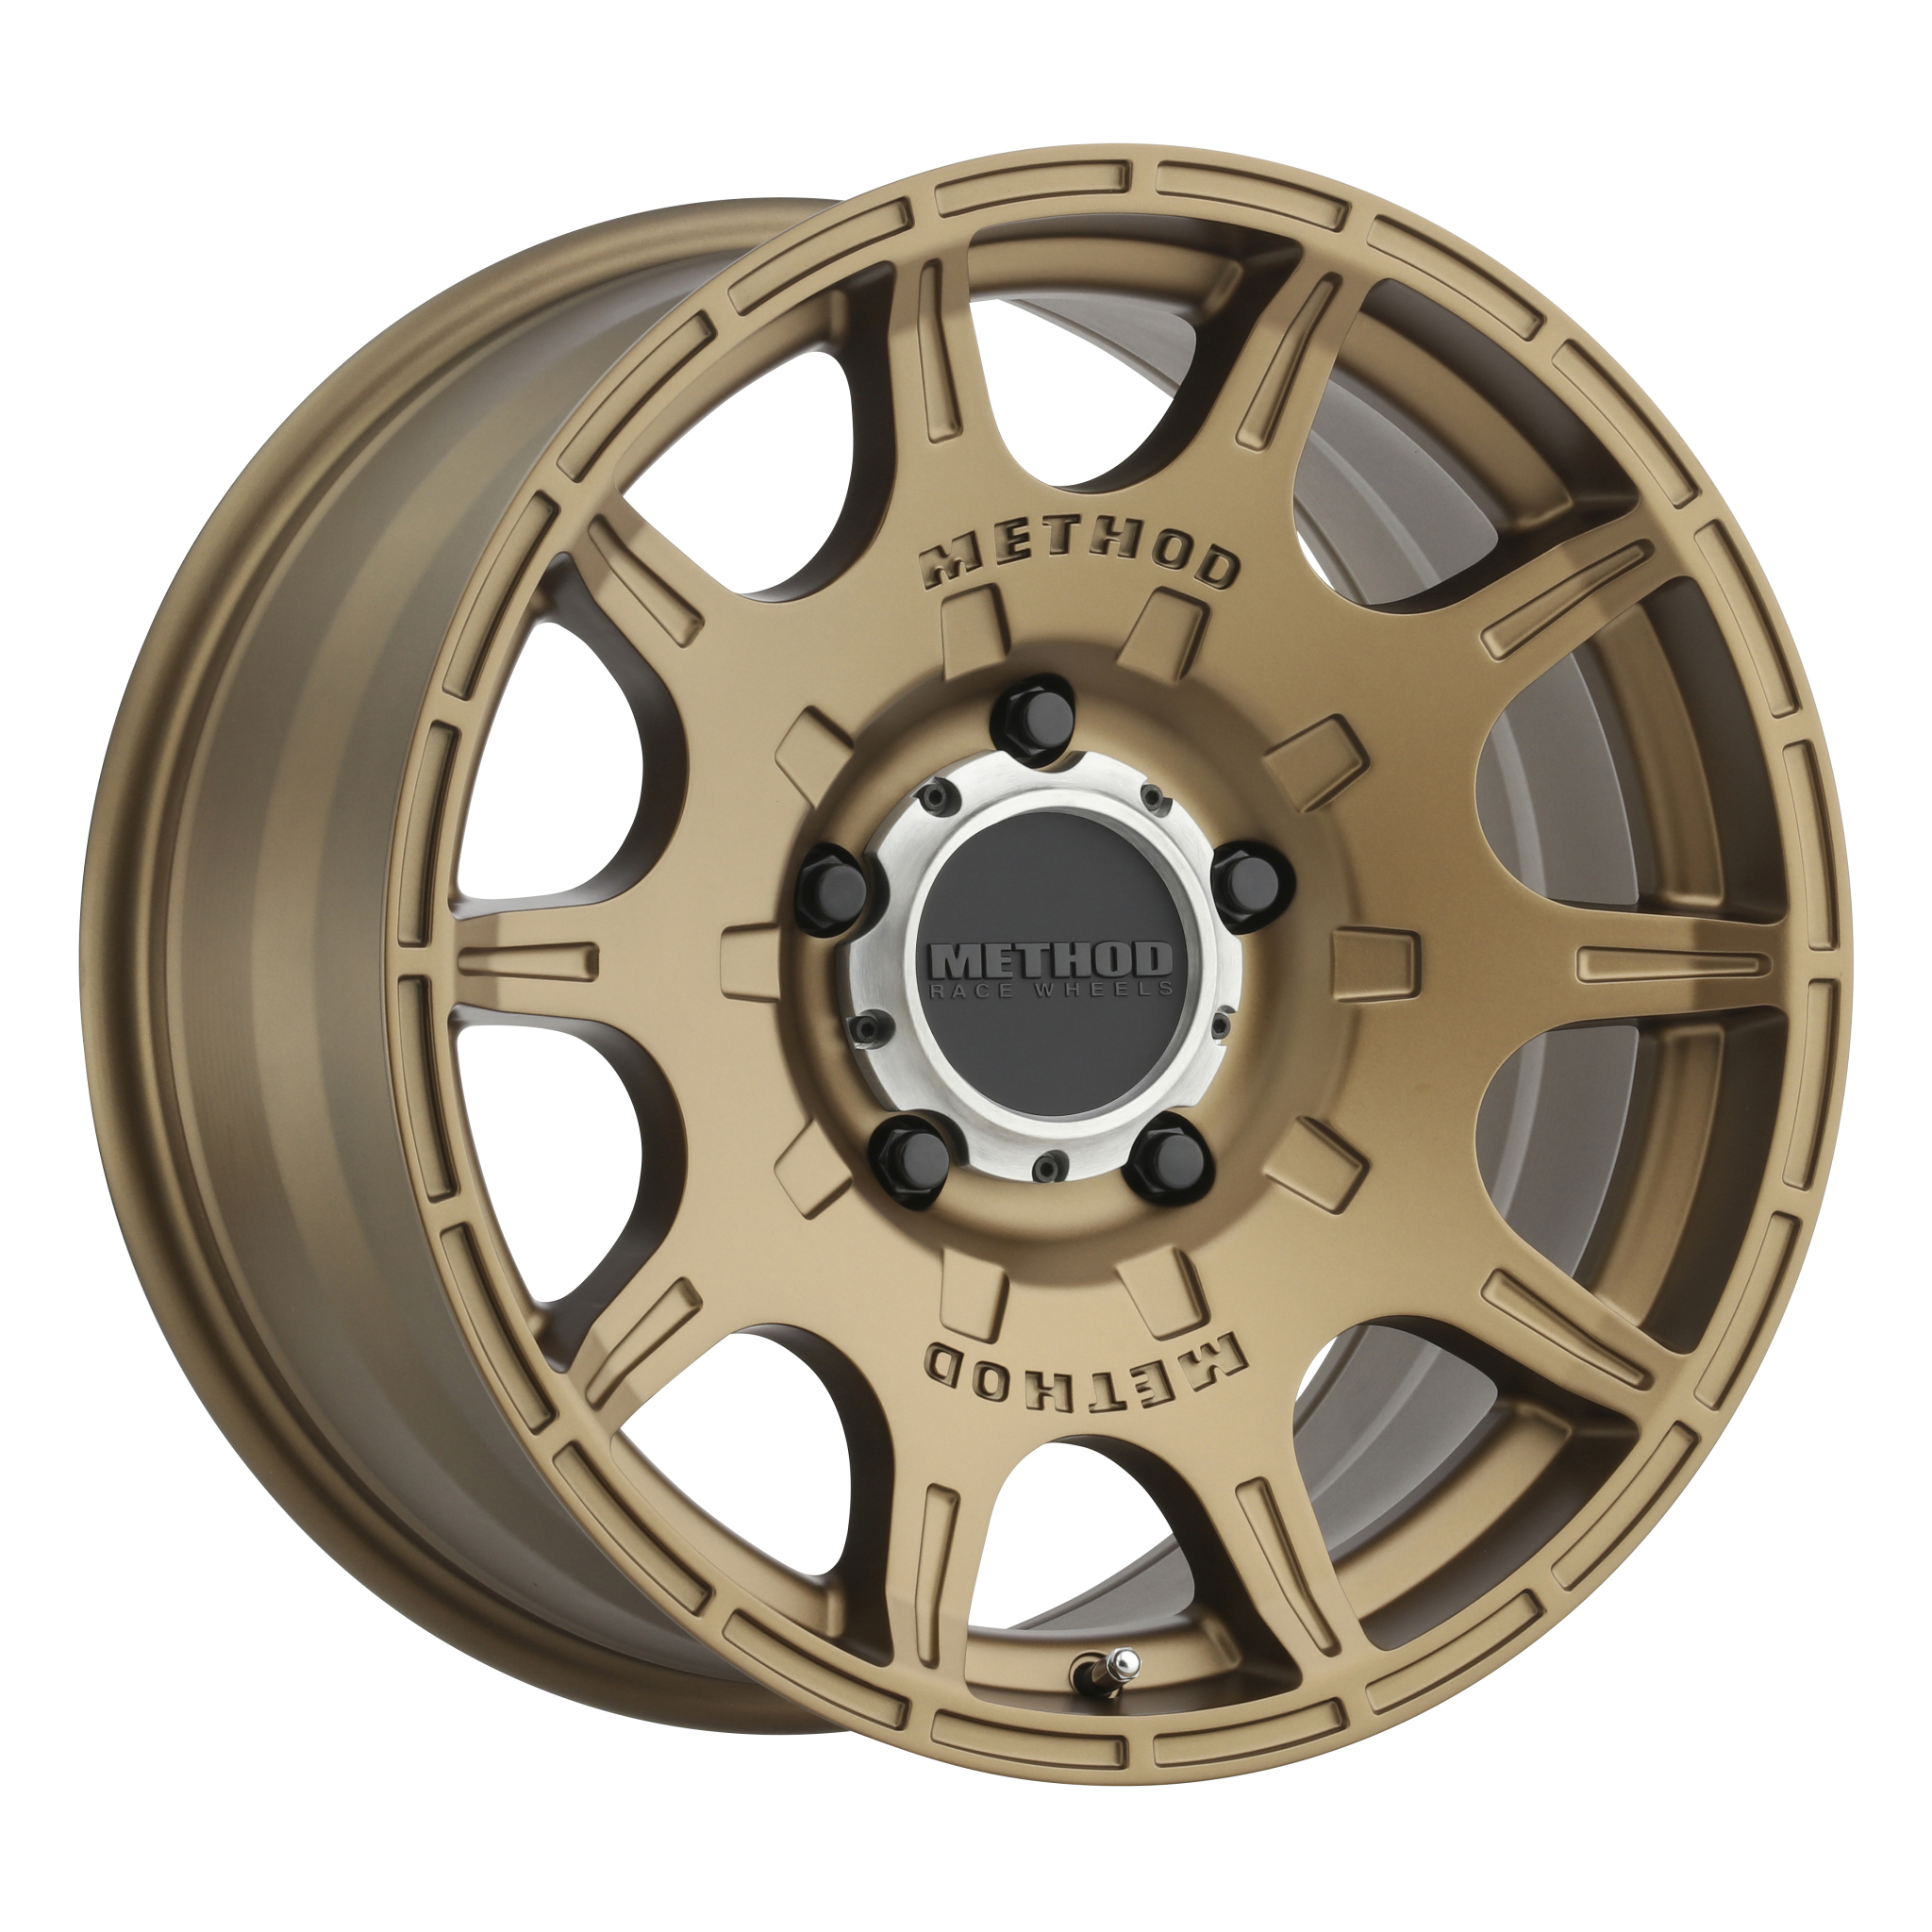 Method 308 Roost, 18x9, +18mm Offset, 5x150, 110.5mm Centerbore, Method Bronze